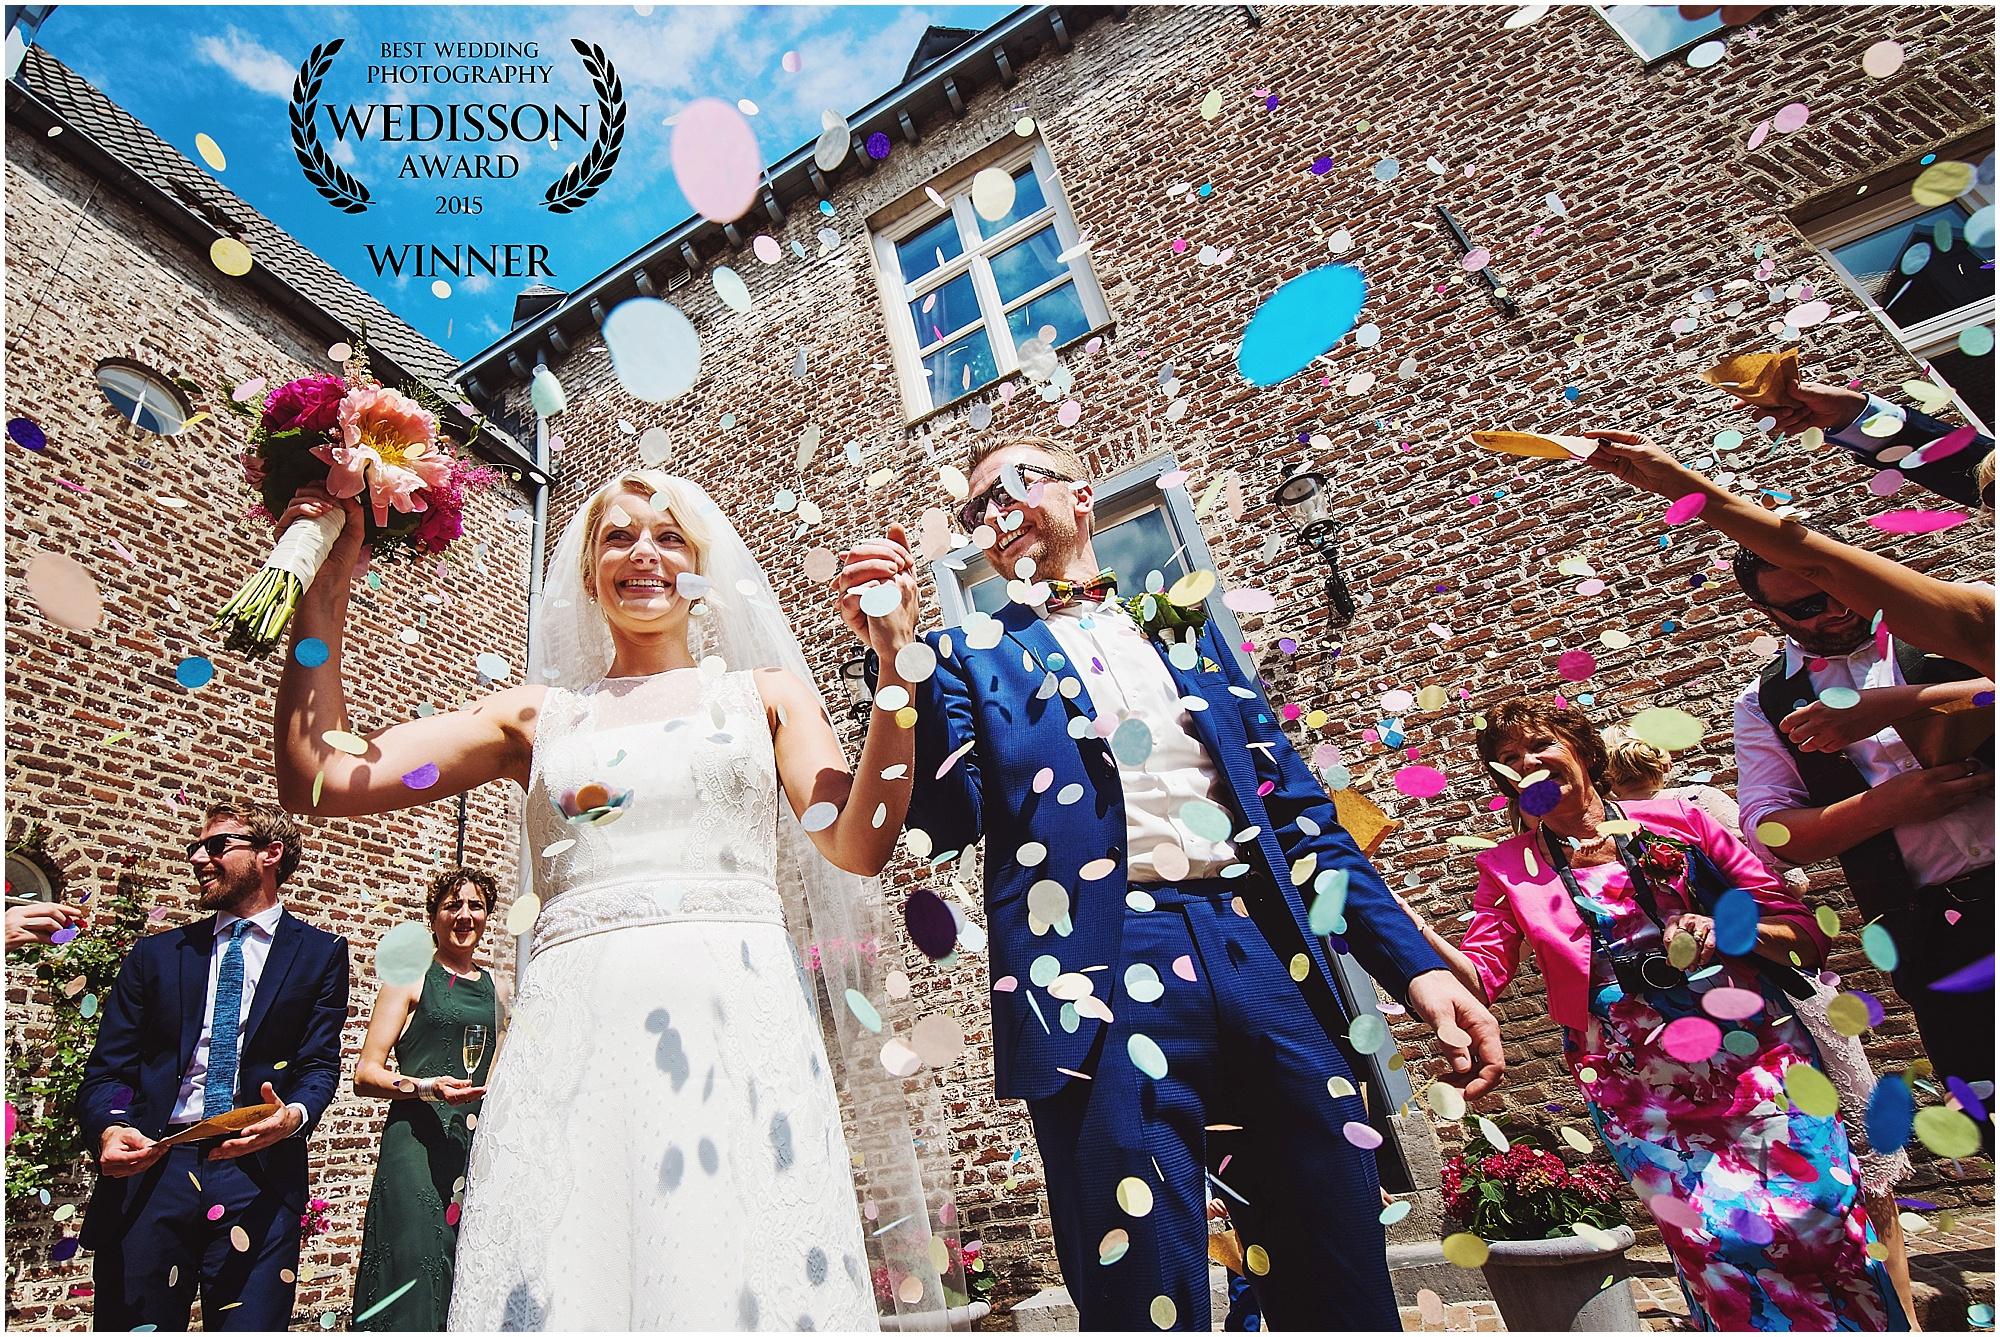 ruudC Fotografie, bruidsfotograaf, bruidsfotografie, trouwfotograaf, trouwfotografie, journalistiek, documentair, editorial, romantiek, bruidsfotografie awards, bruidsfotografie award, bruidsfoto award, BFFA, Masters of Wedding Photography, ISPWP